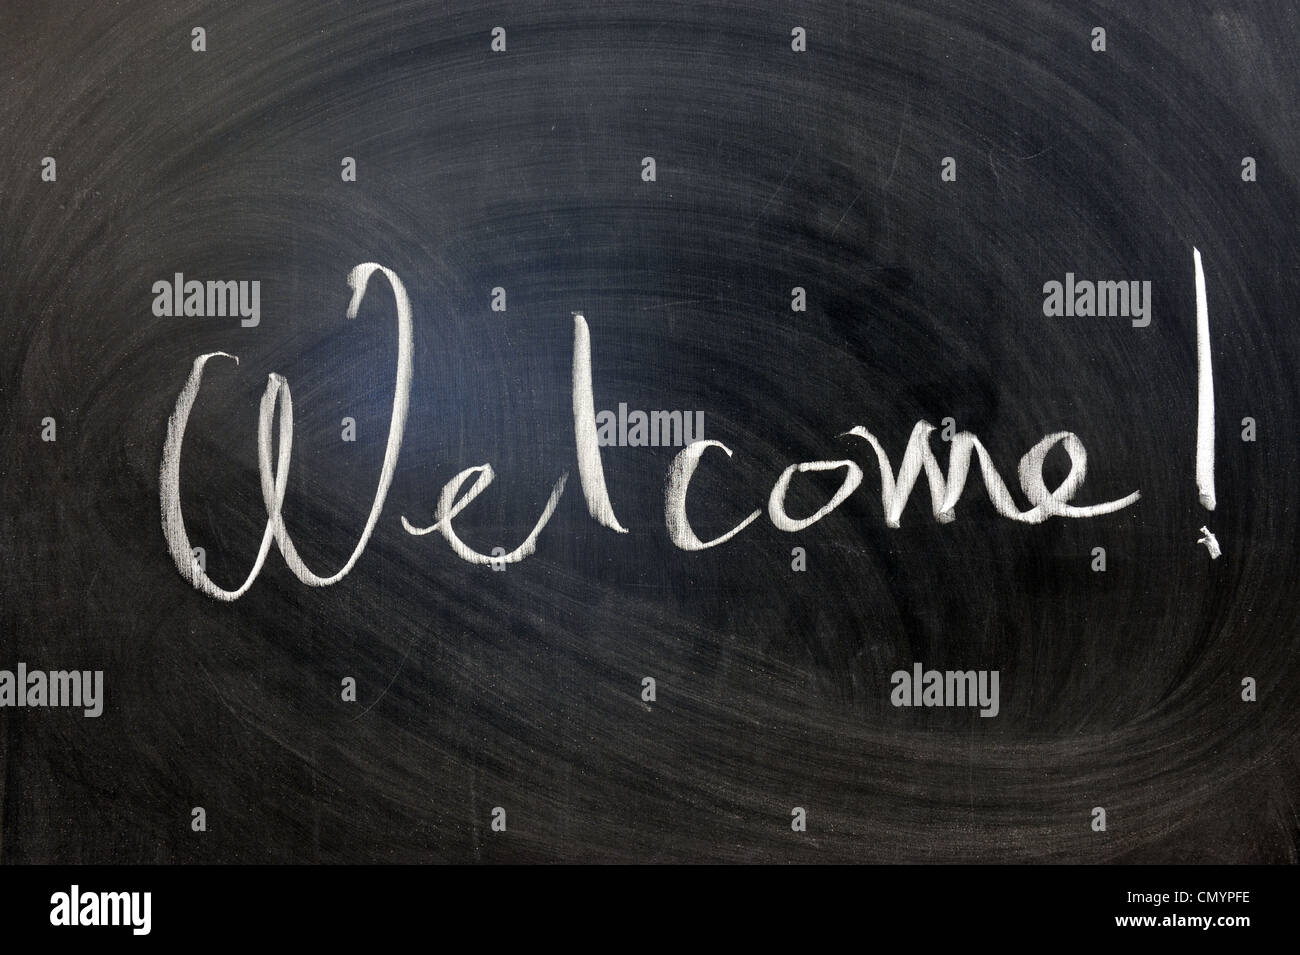 Chalk writing - Welcome word written on chalkboard - Stock Image